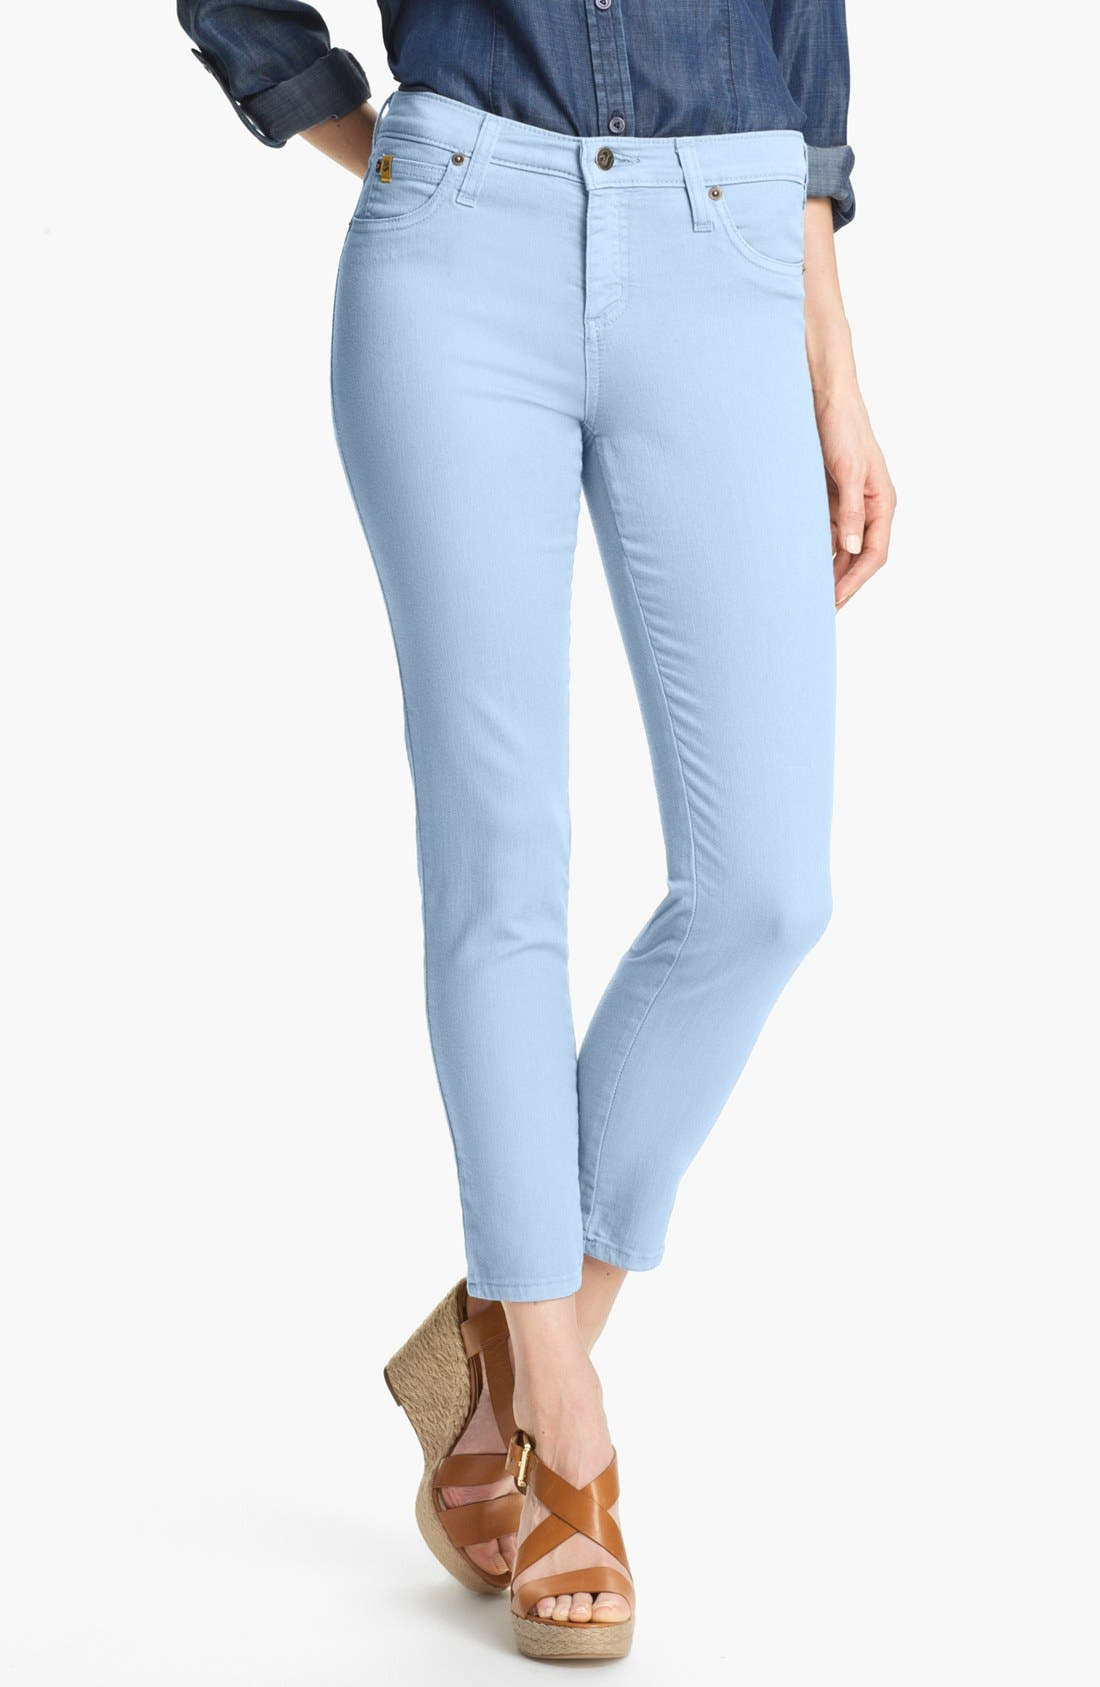 Main Image - Second Yoga Jeans Skinny Ankle Jeans